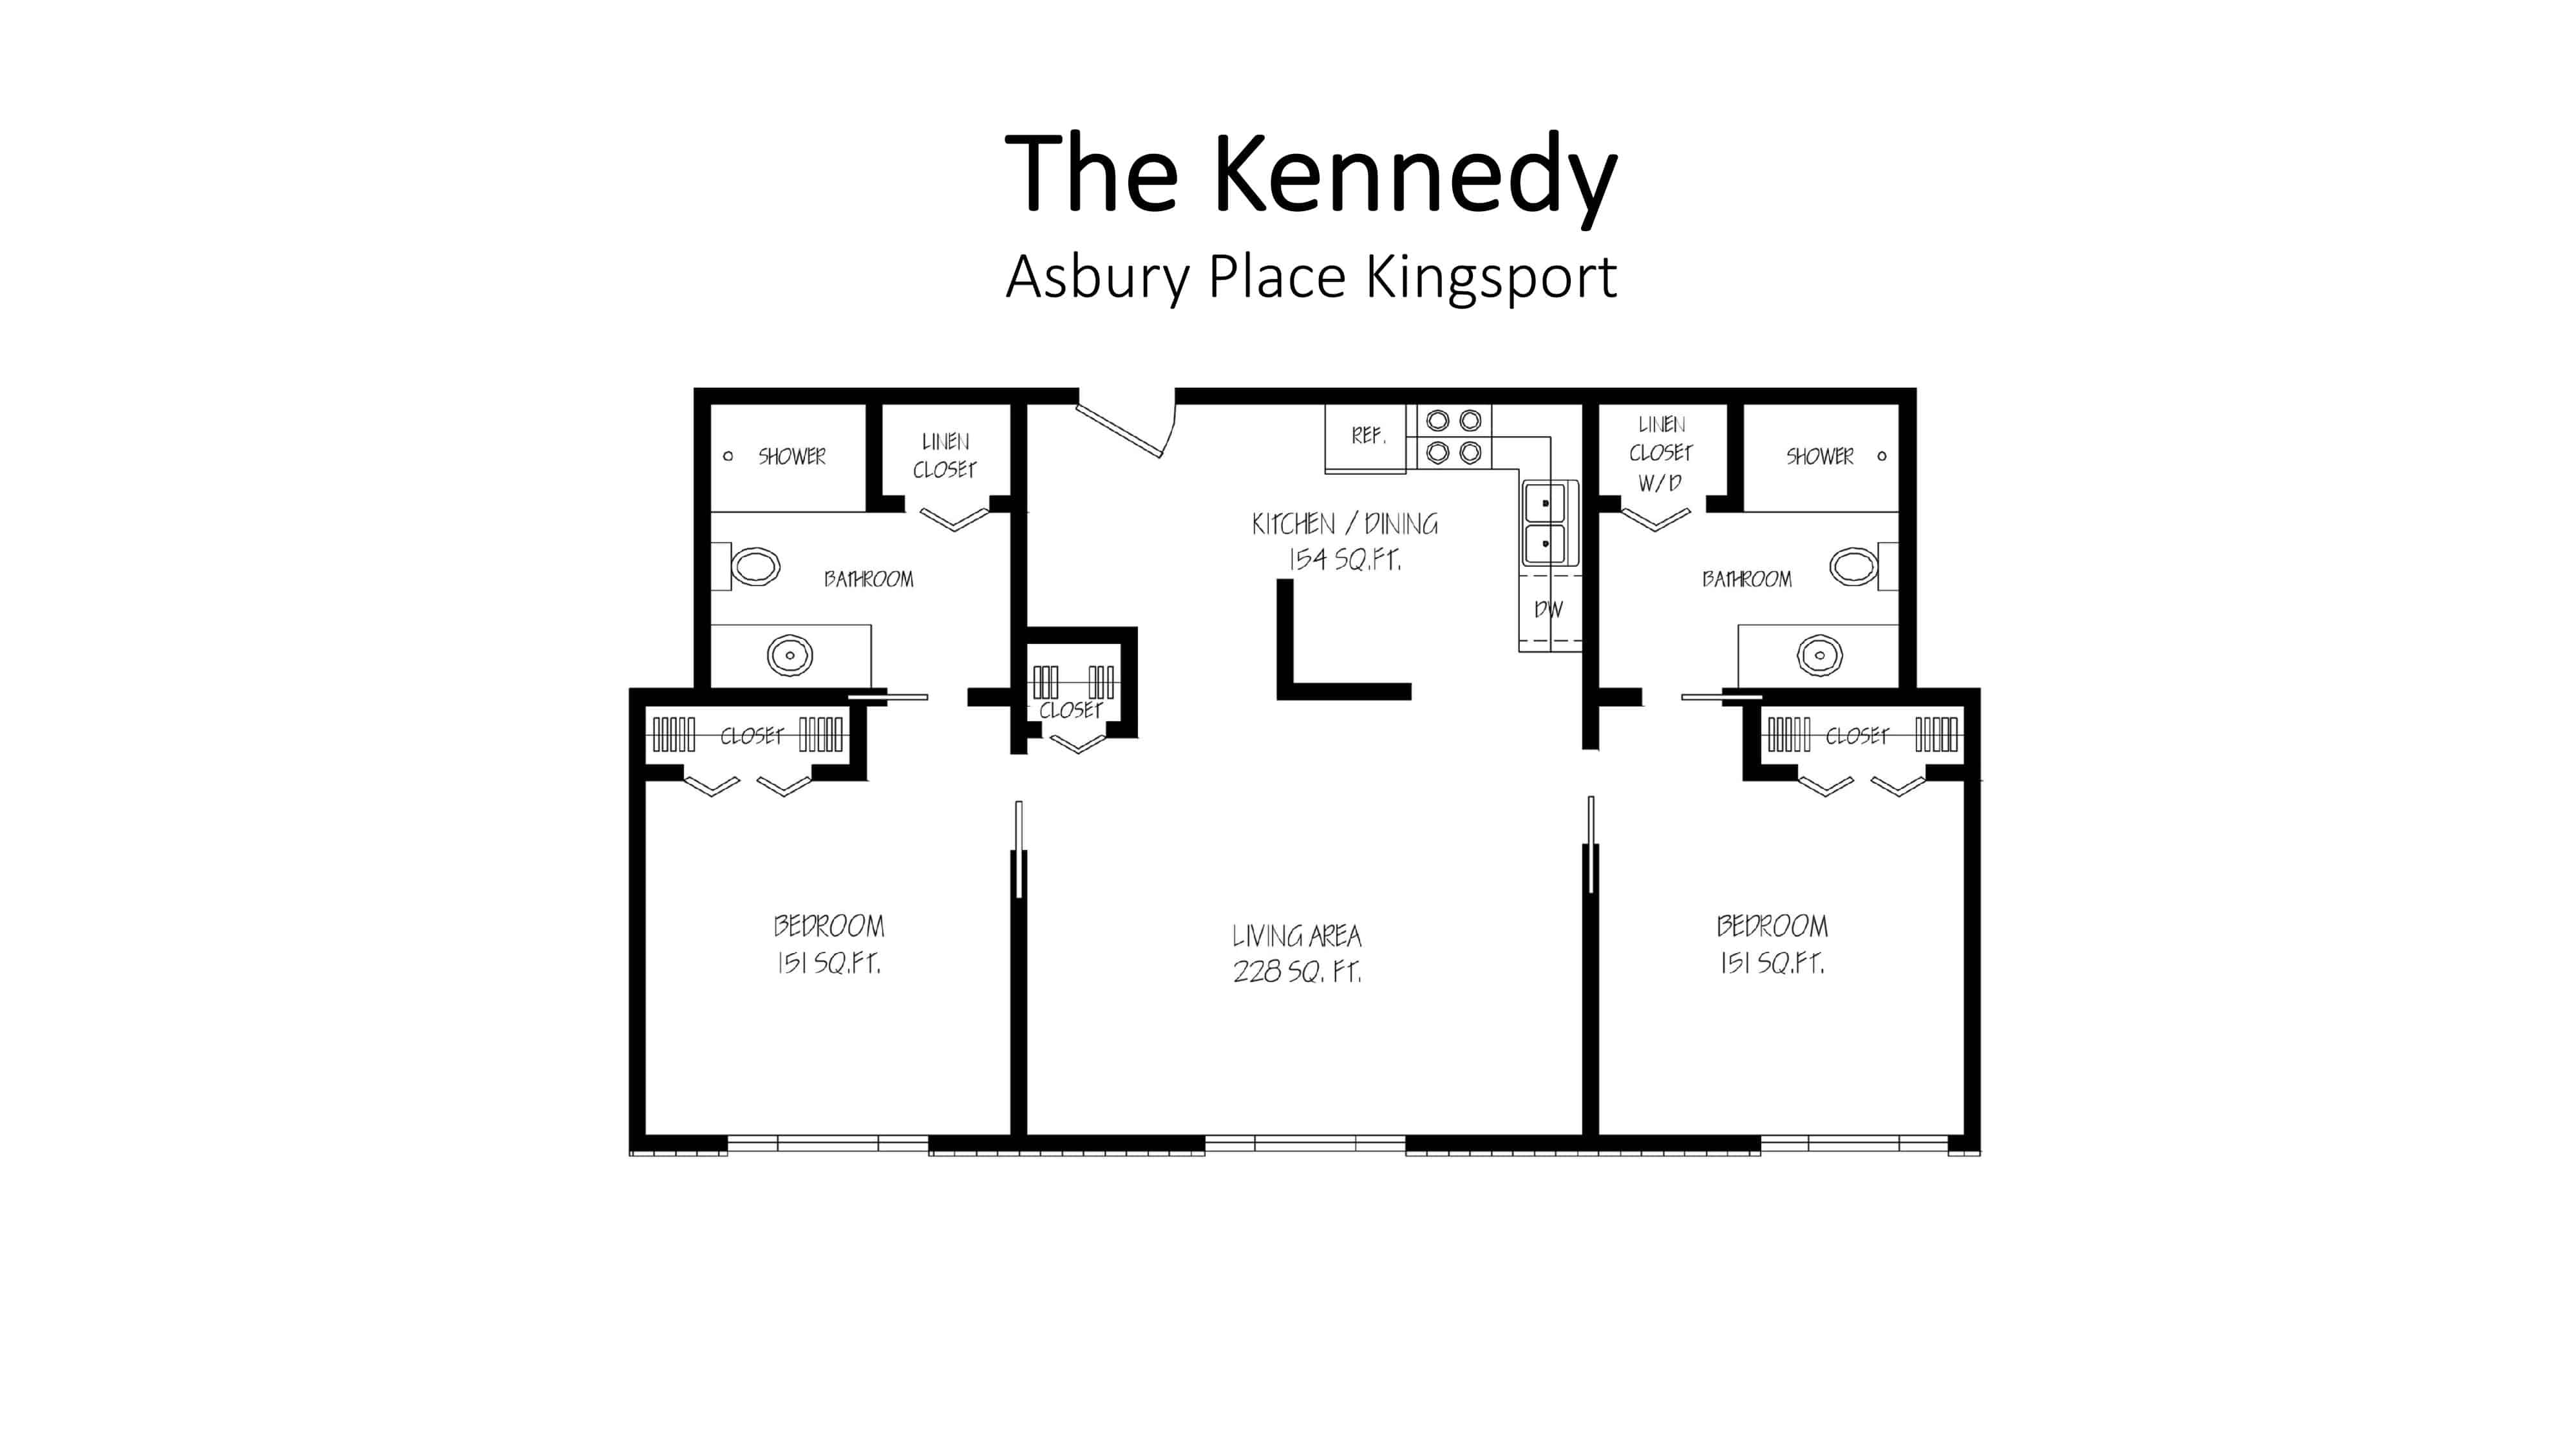 Asbury Place Kingsport The Kennedy Floorplan